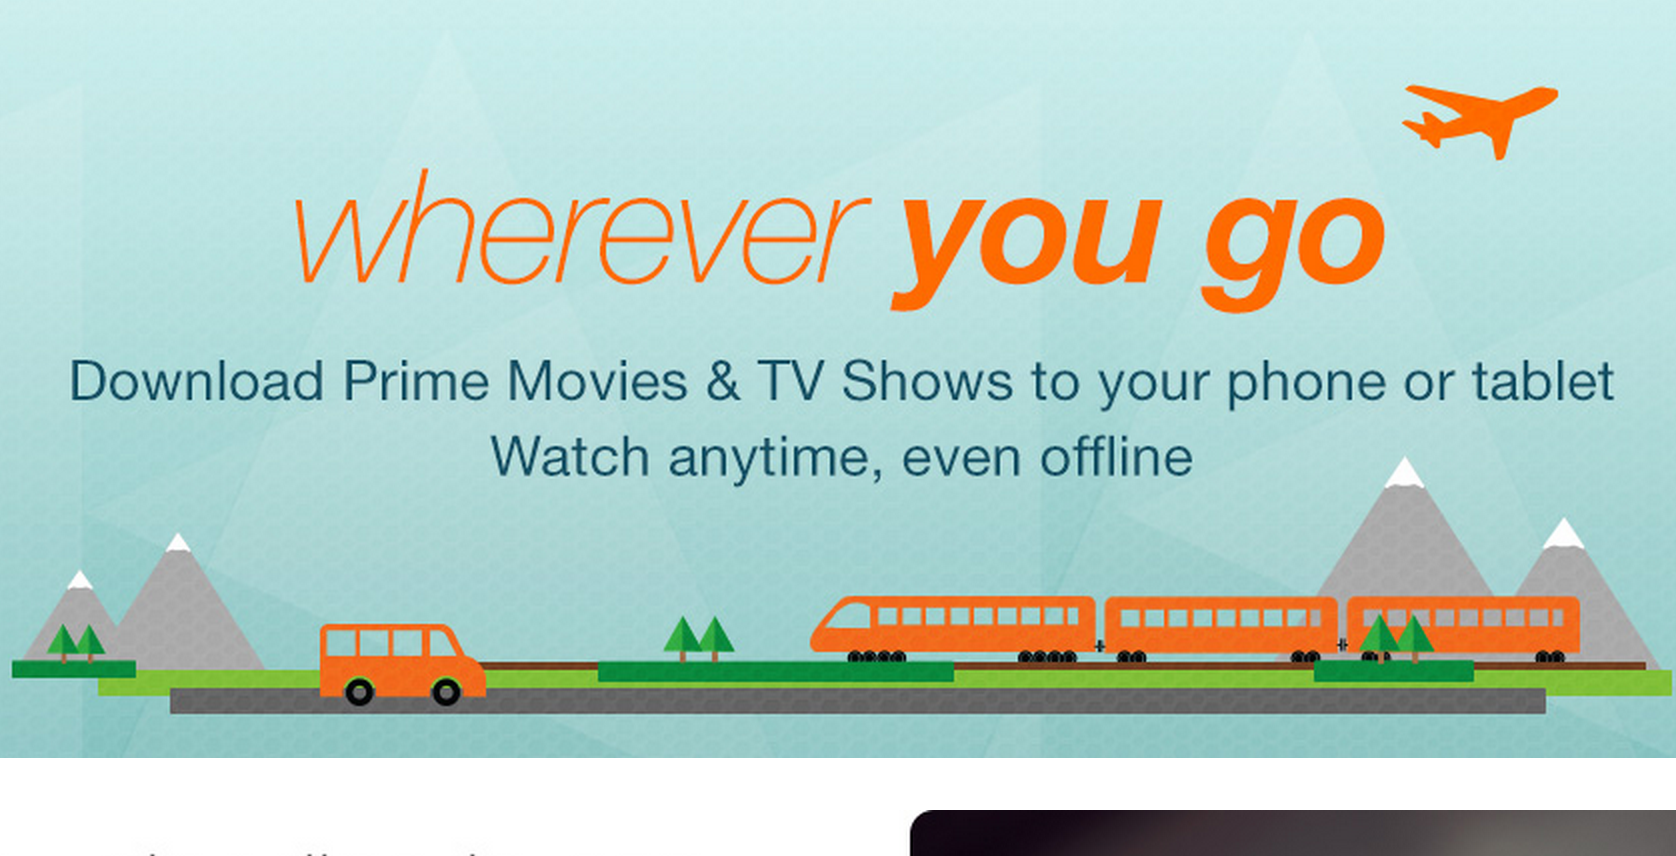 RT @TheNextWeb: Amazon Prime Video one-ups Netflix with offline playback on Android and iOS http://t.co/bJUdACKCRV http://t.co/NxvwkFoc8D